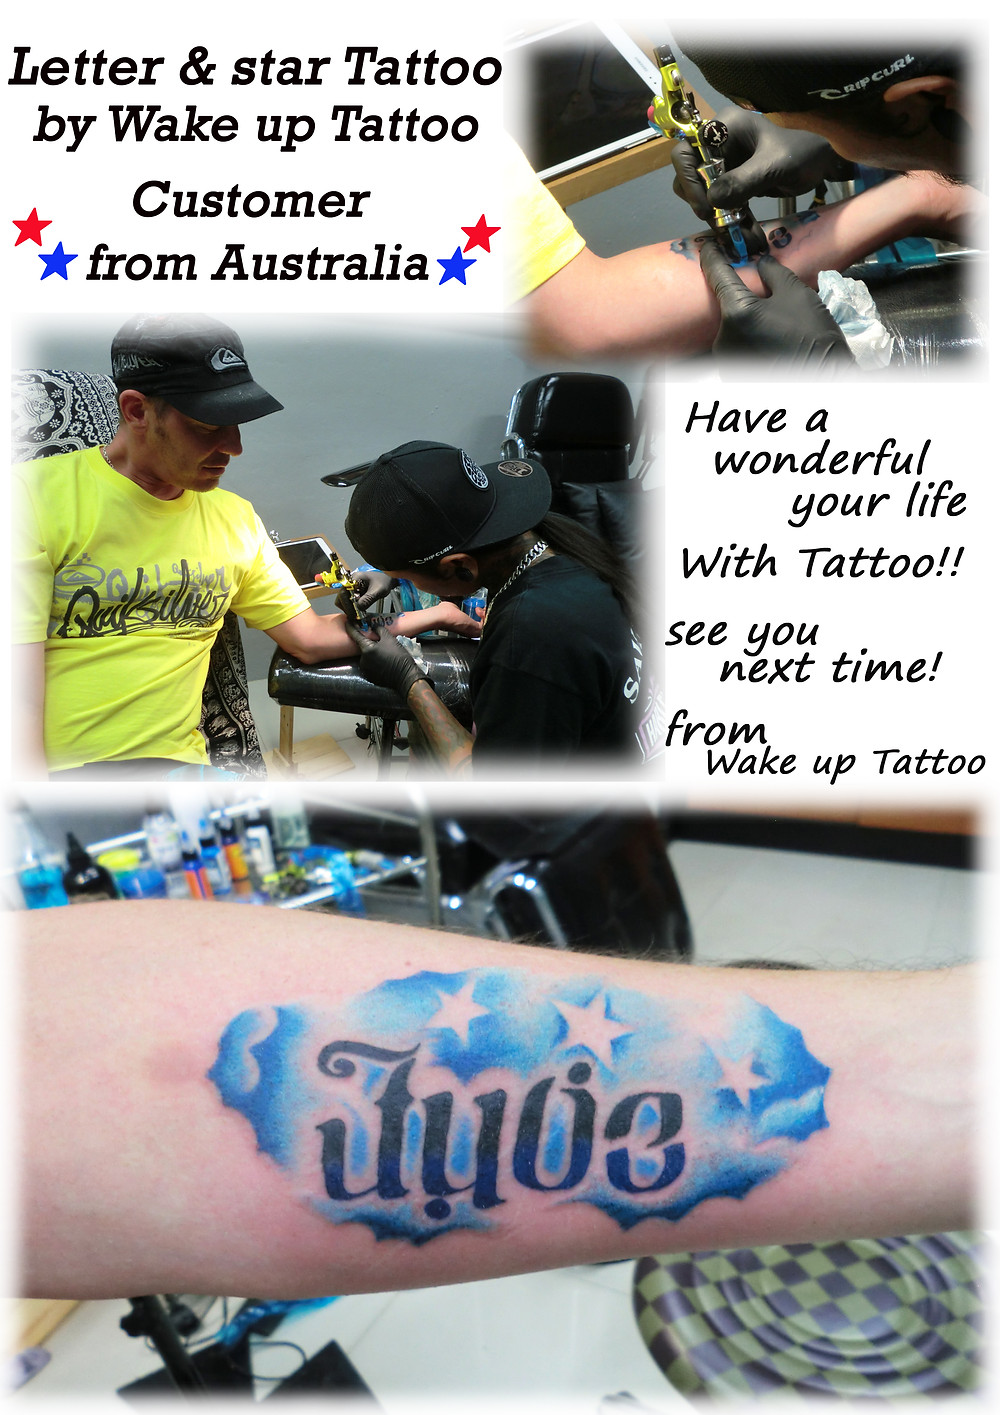 Letter & star tattoo by Wake up Tattoo Phuket